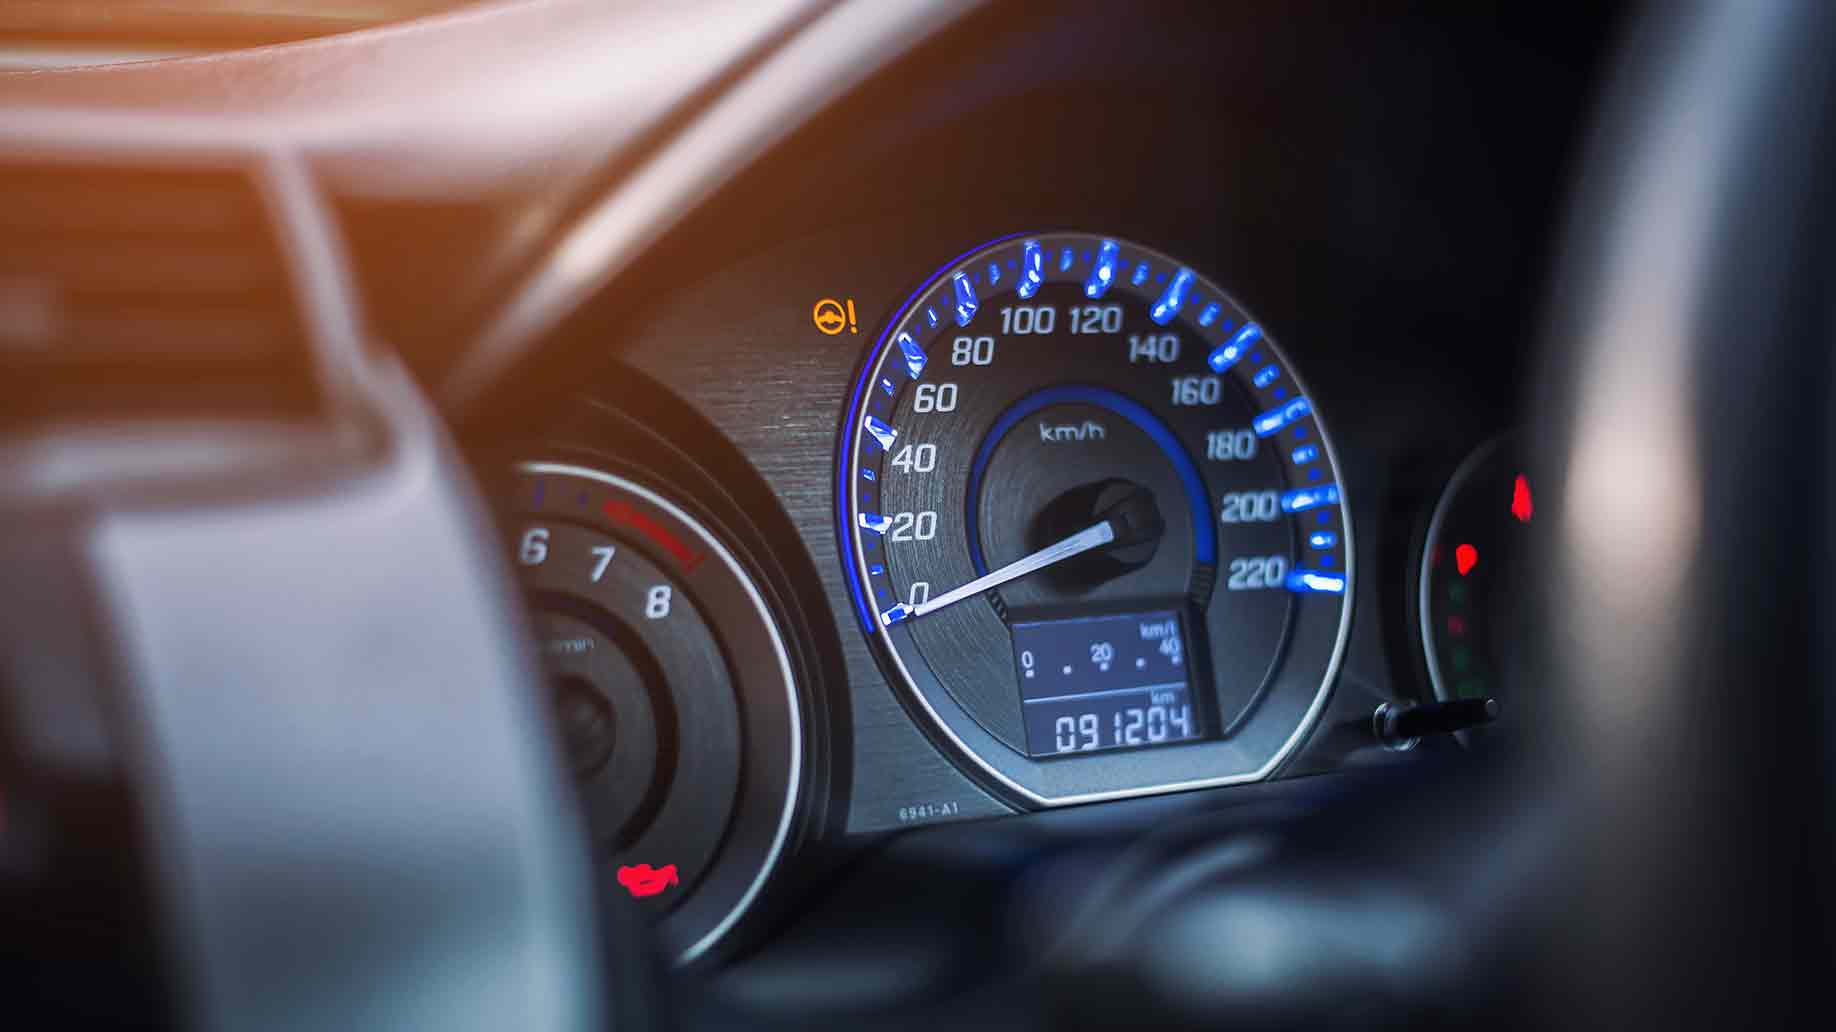 9 Ways to Improve Your Car's Gas Mileage and Drive Efficiently